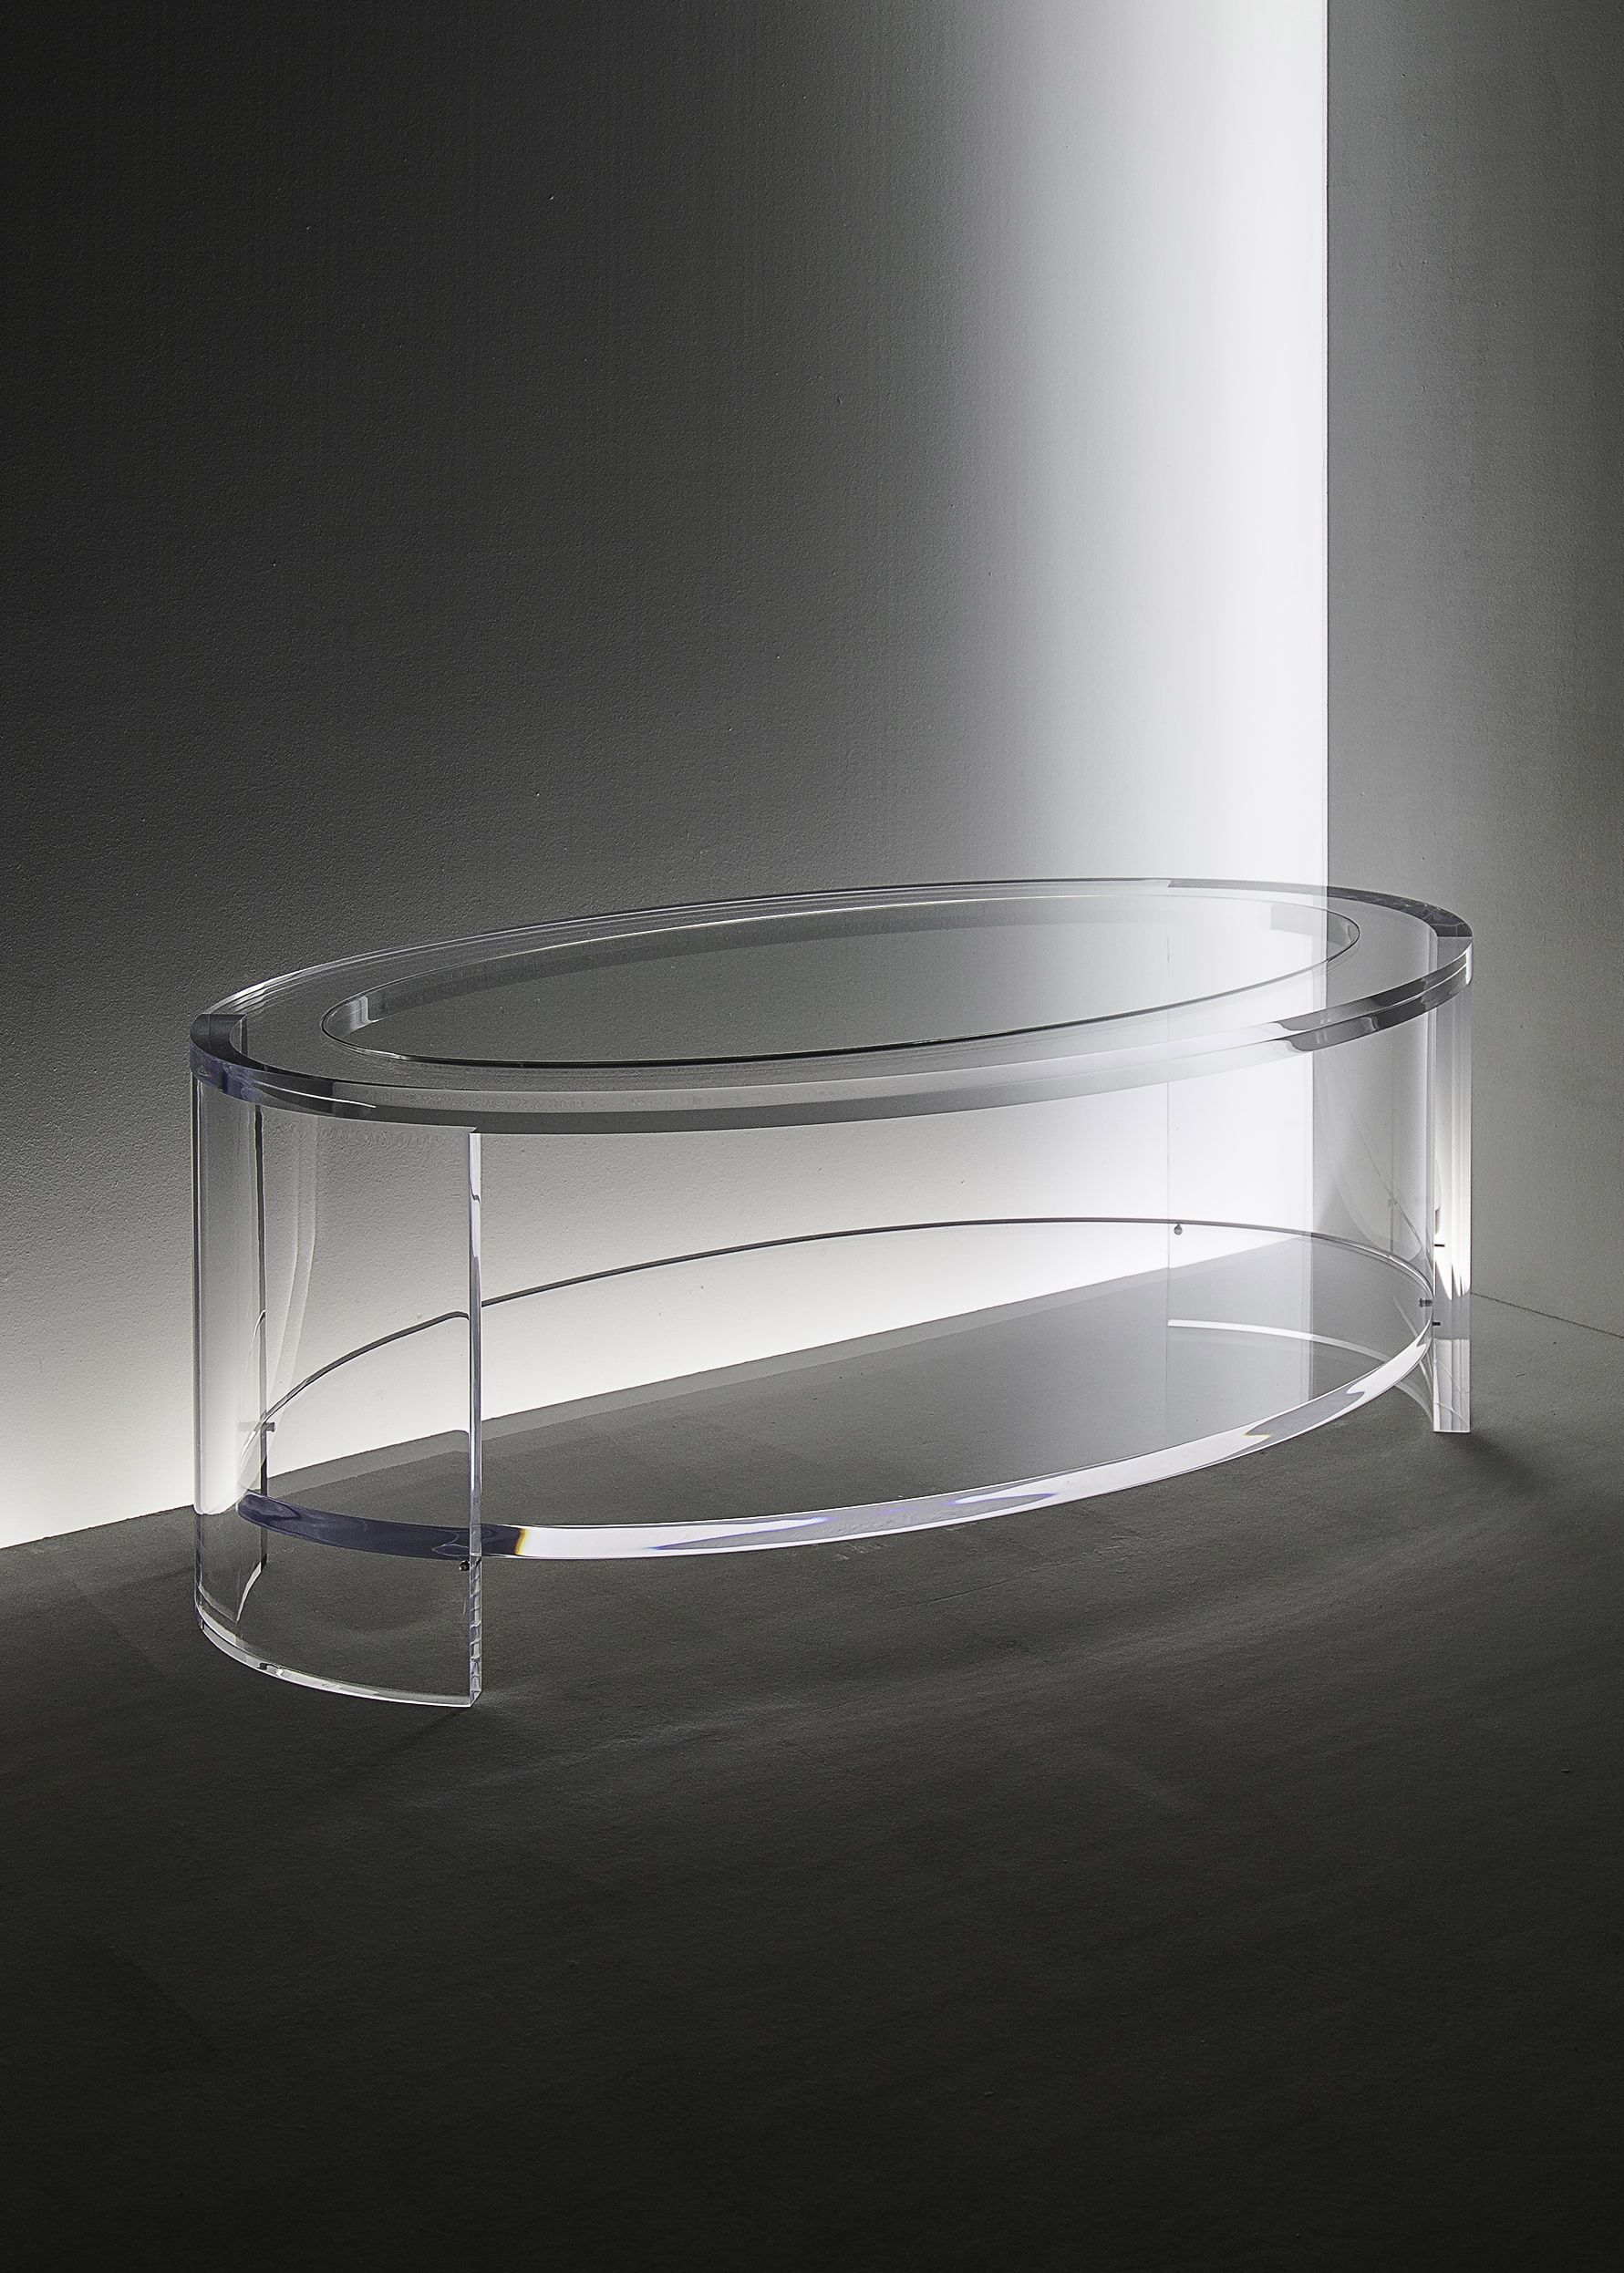 ACRYLIC Eclipse oval coffee table in acrylic and glass with